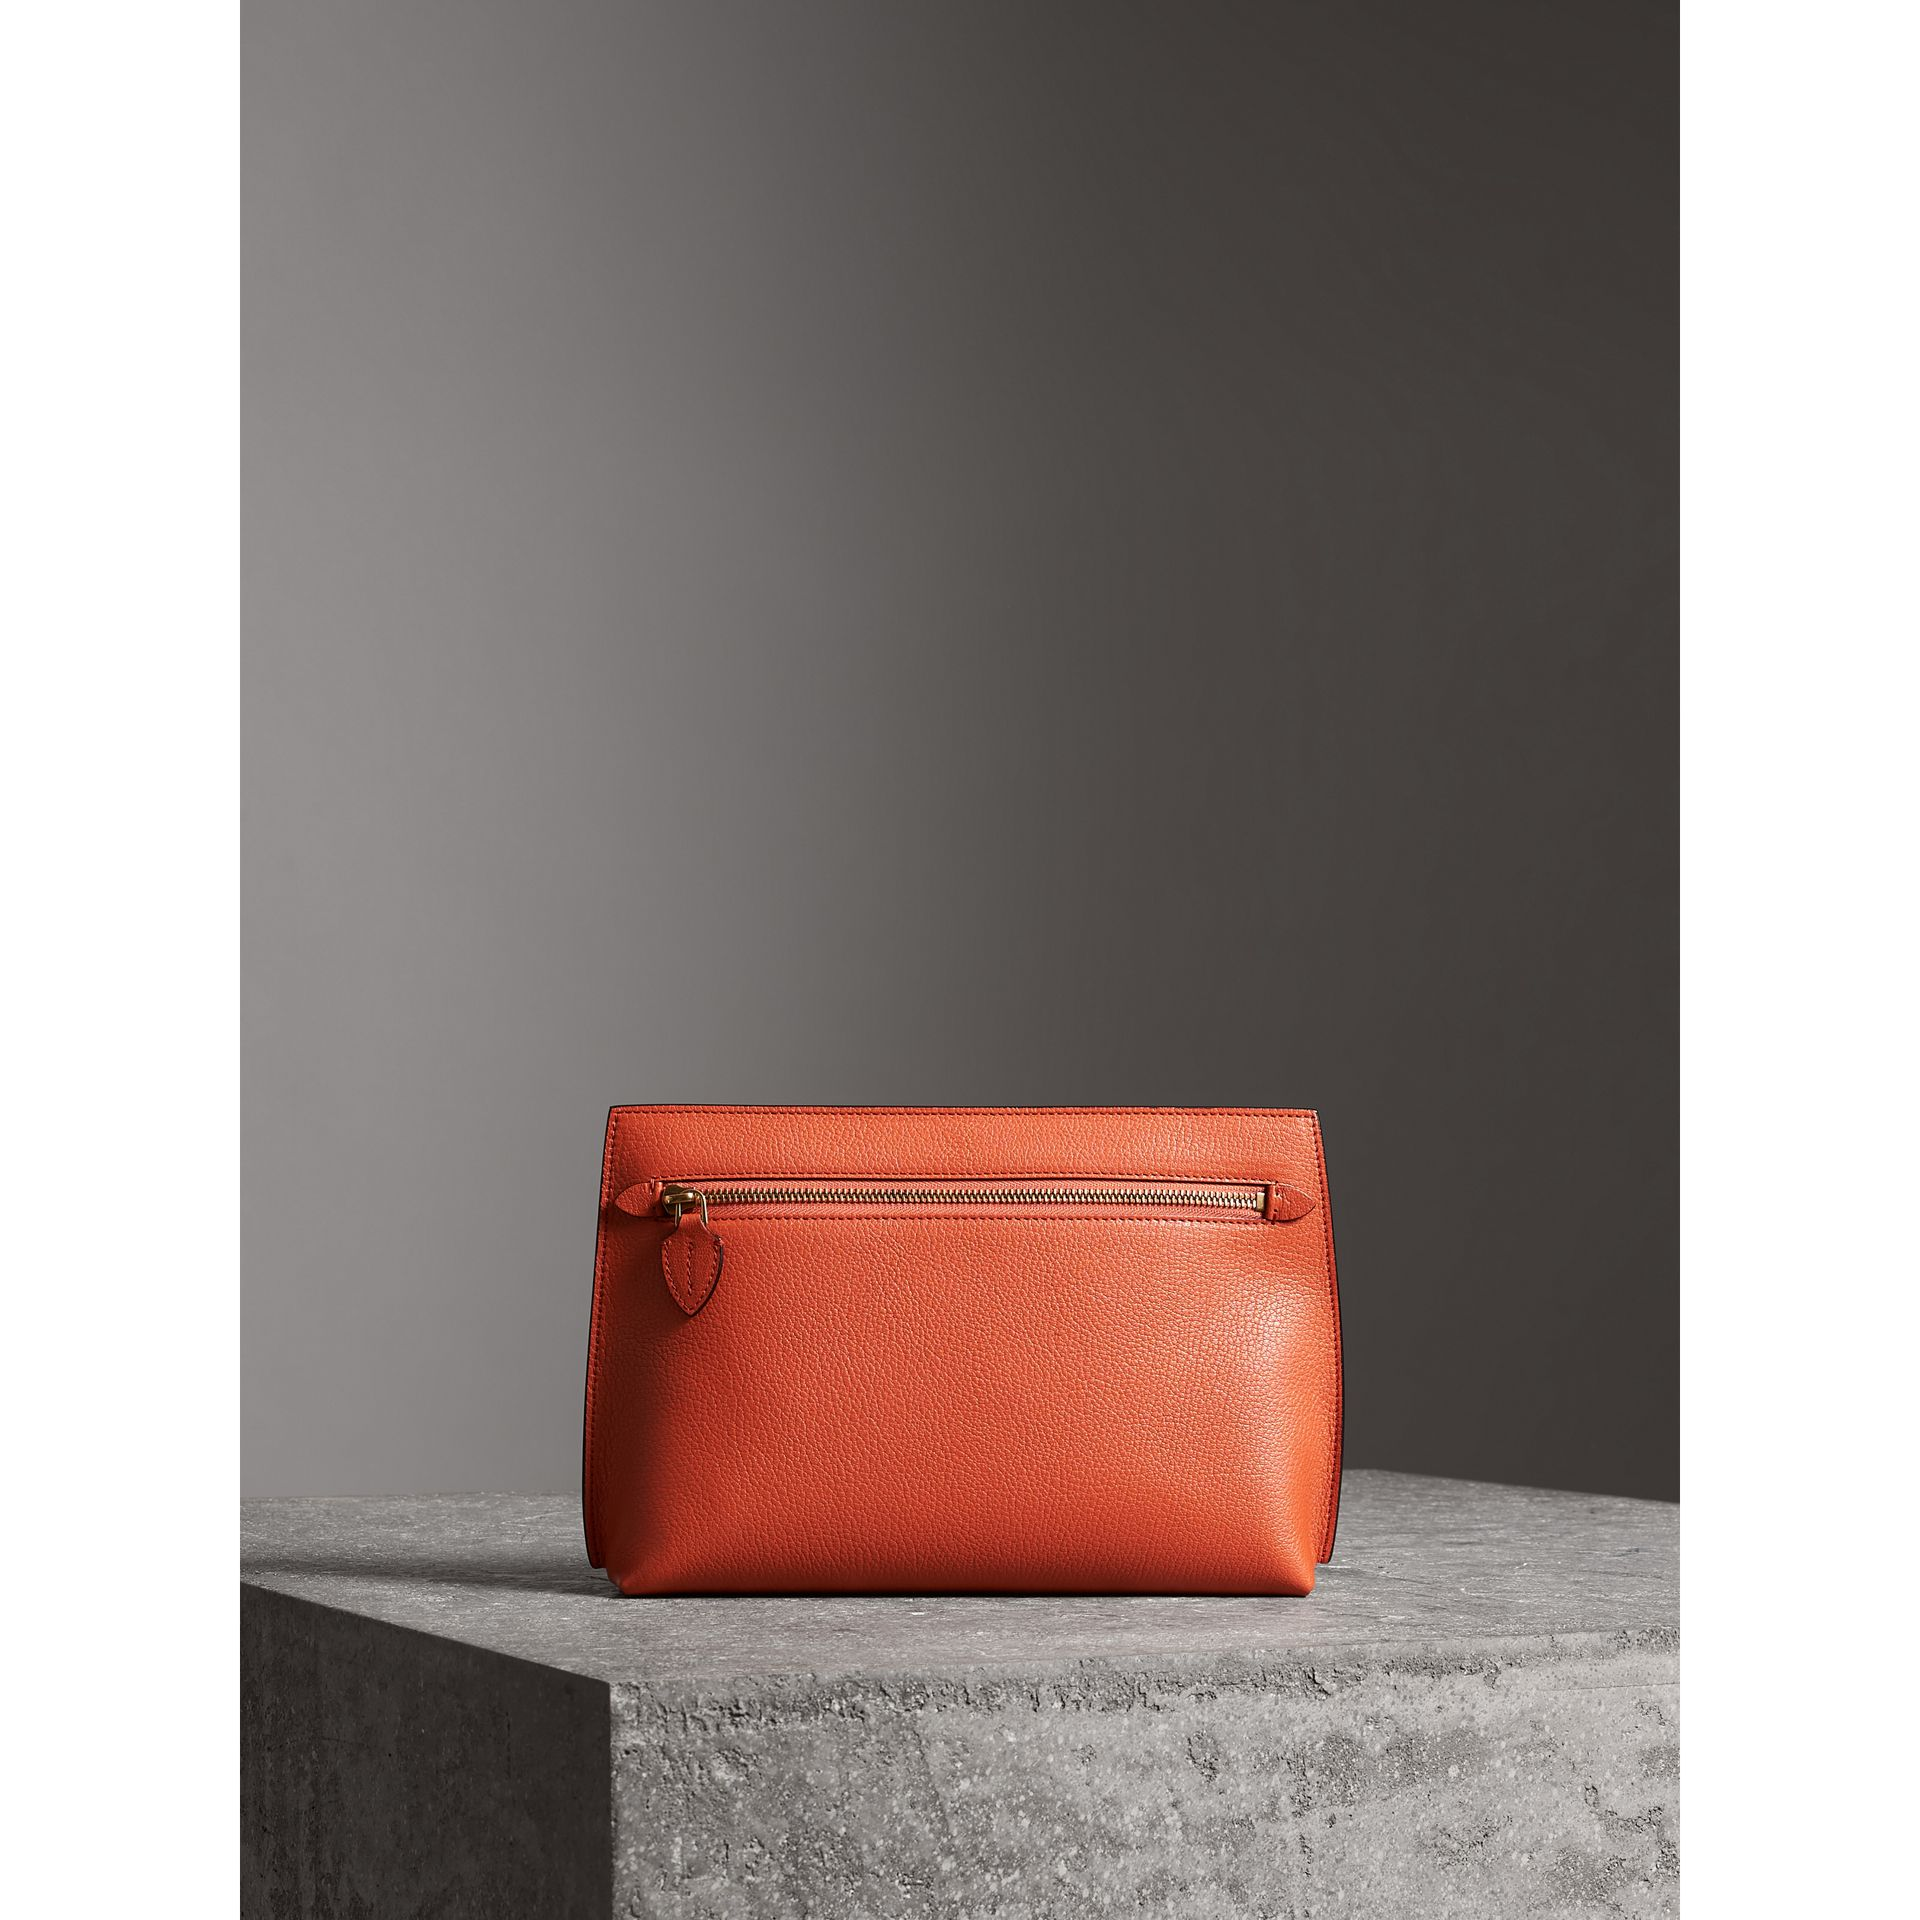 Grainy Leather Wristlet Clutch in Clementine - Women | Burberry - gallery image 5